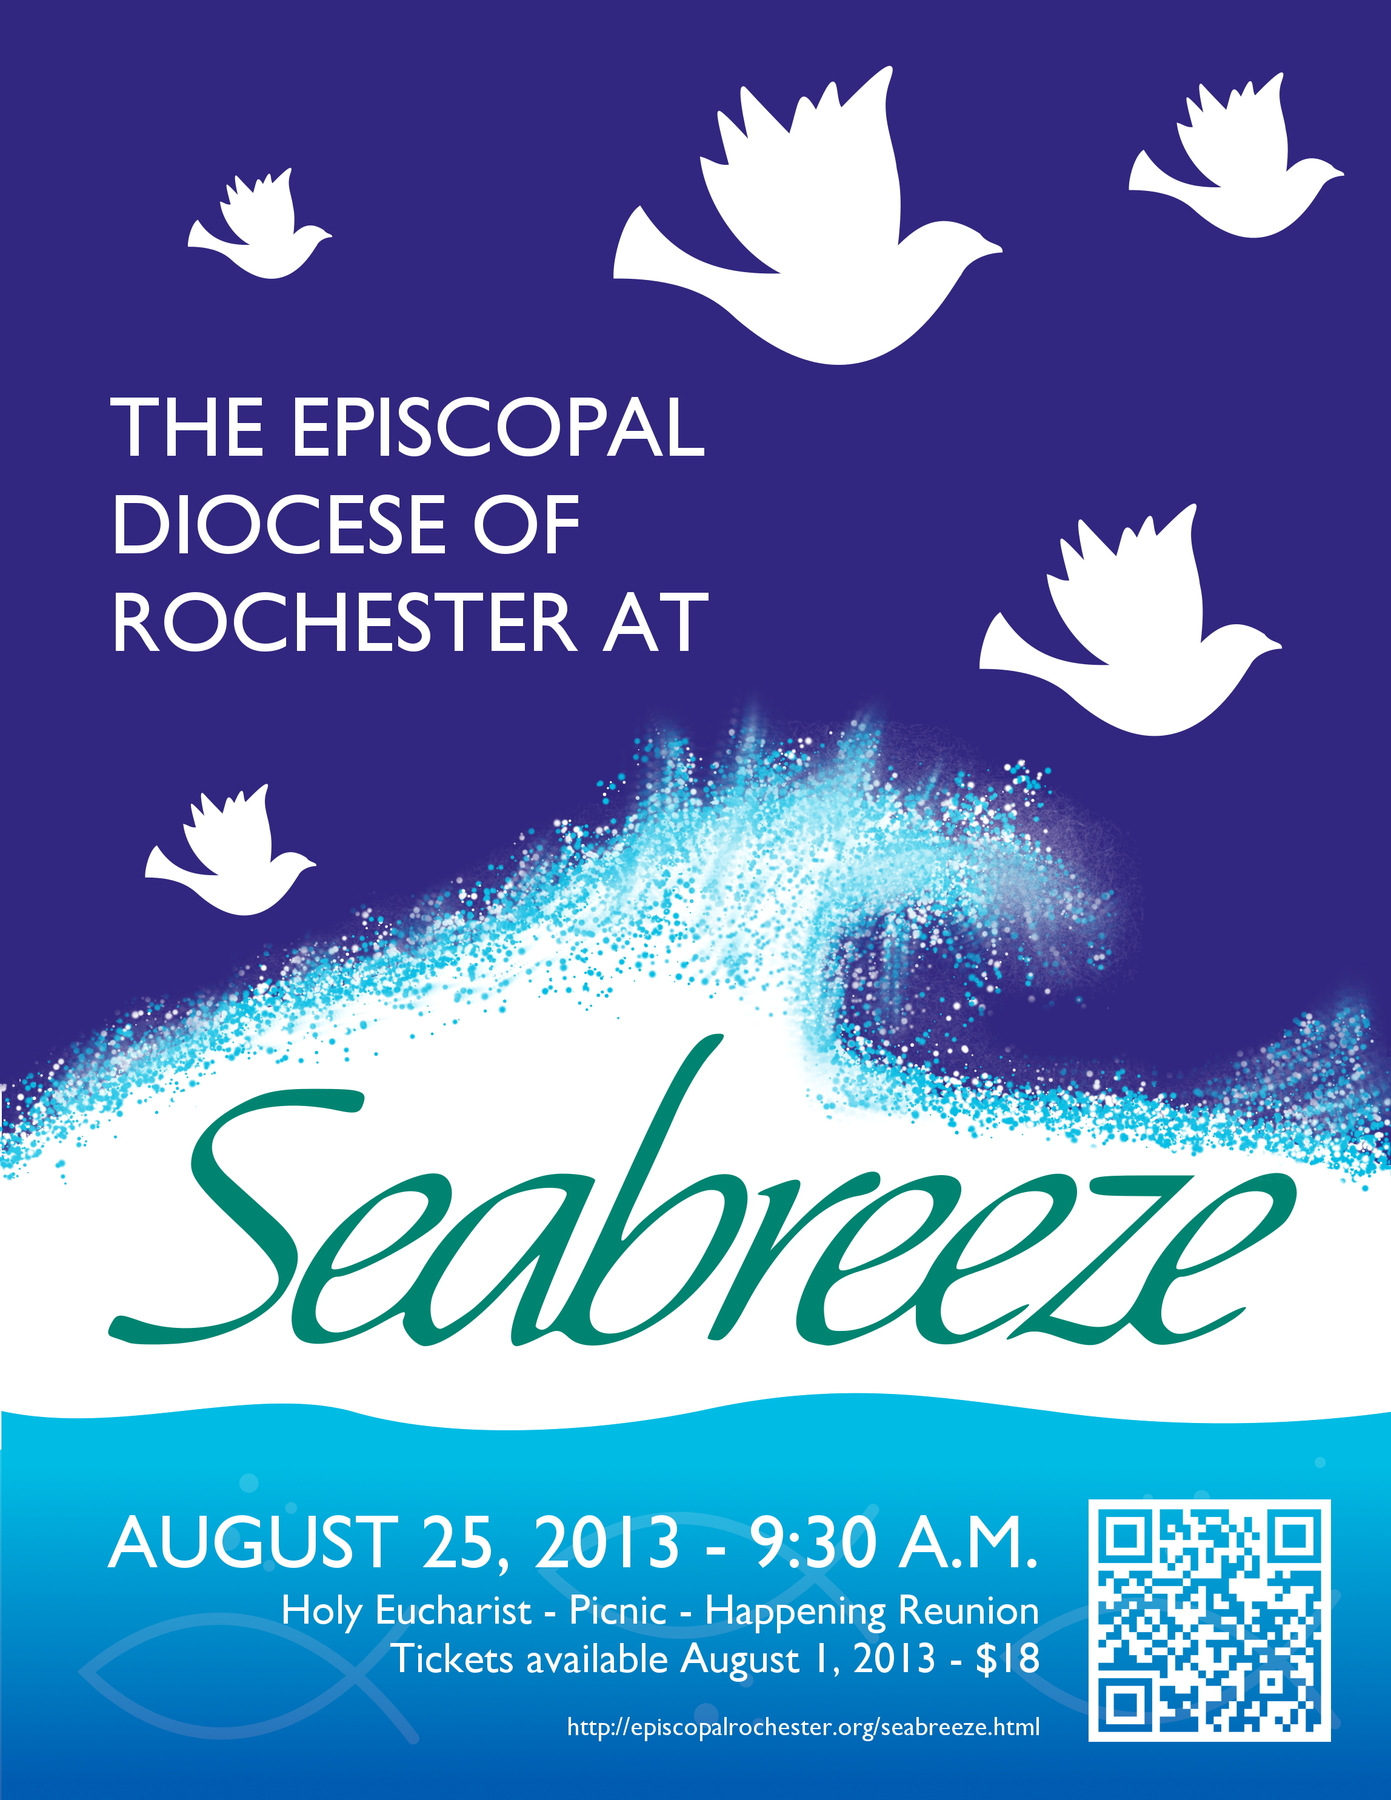 The Episcopal Diocese of Rochester at Seabreeze